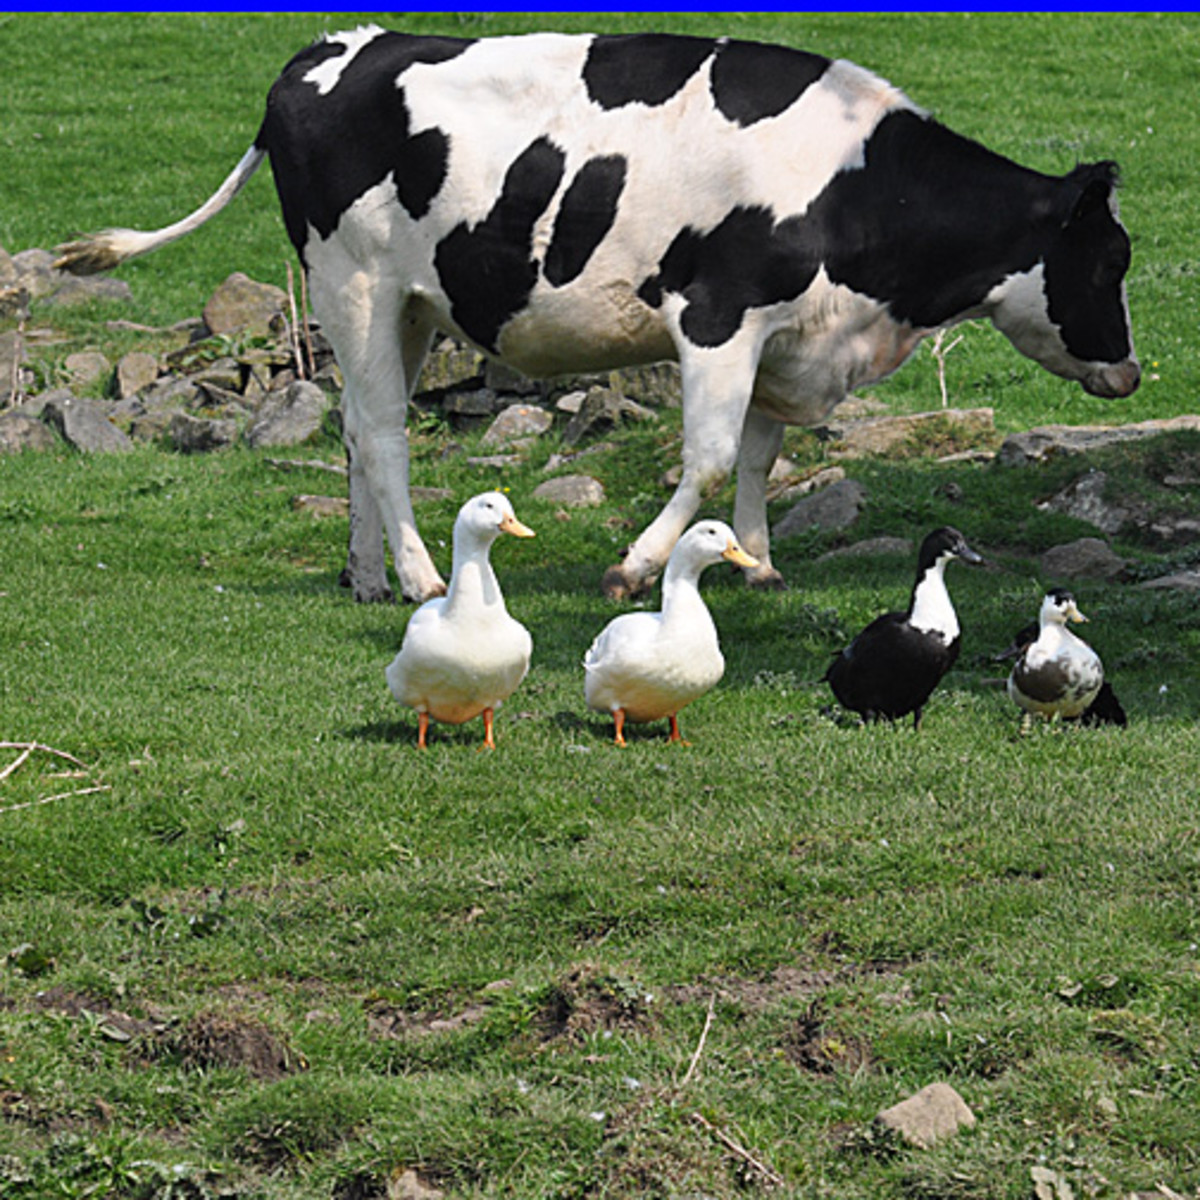 Cow, Aylesbury ducks, Blue Swedish ducks 'Friends and Neighbours'